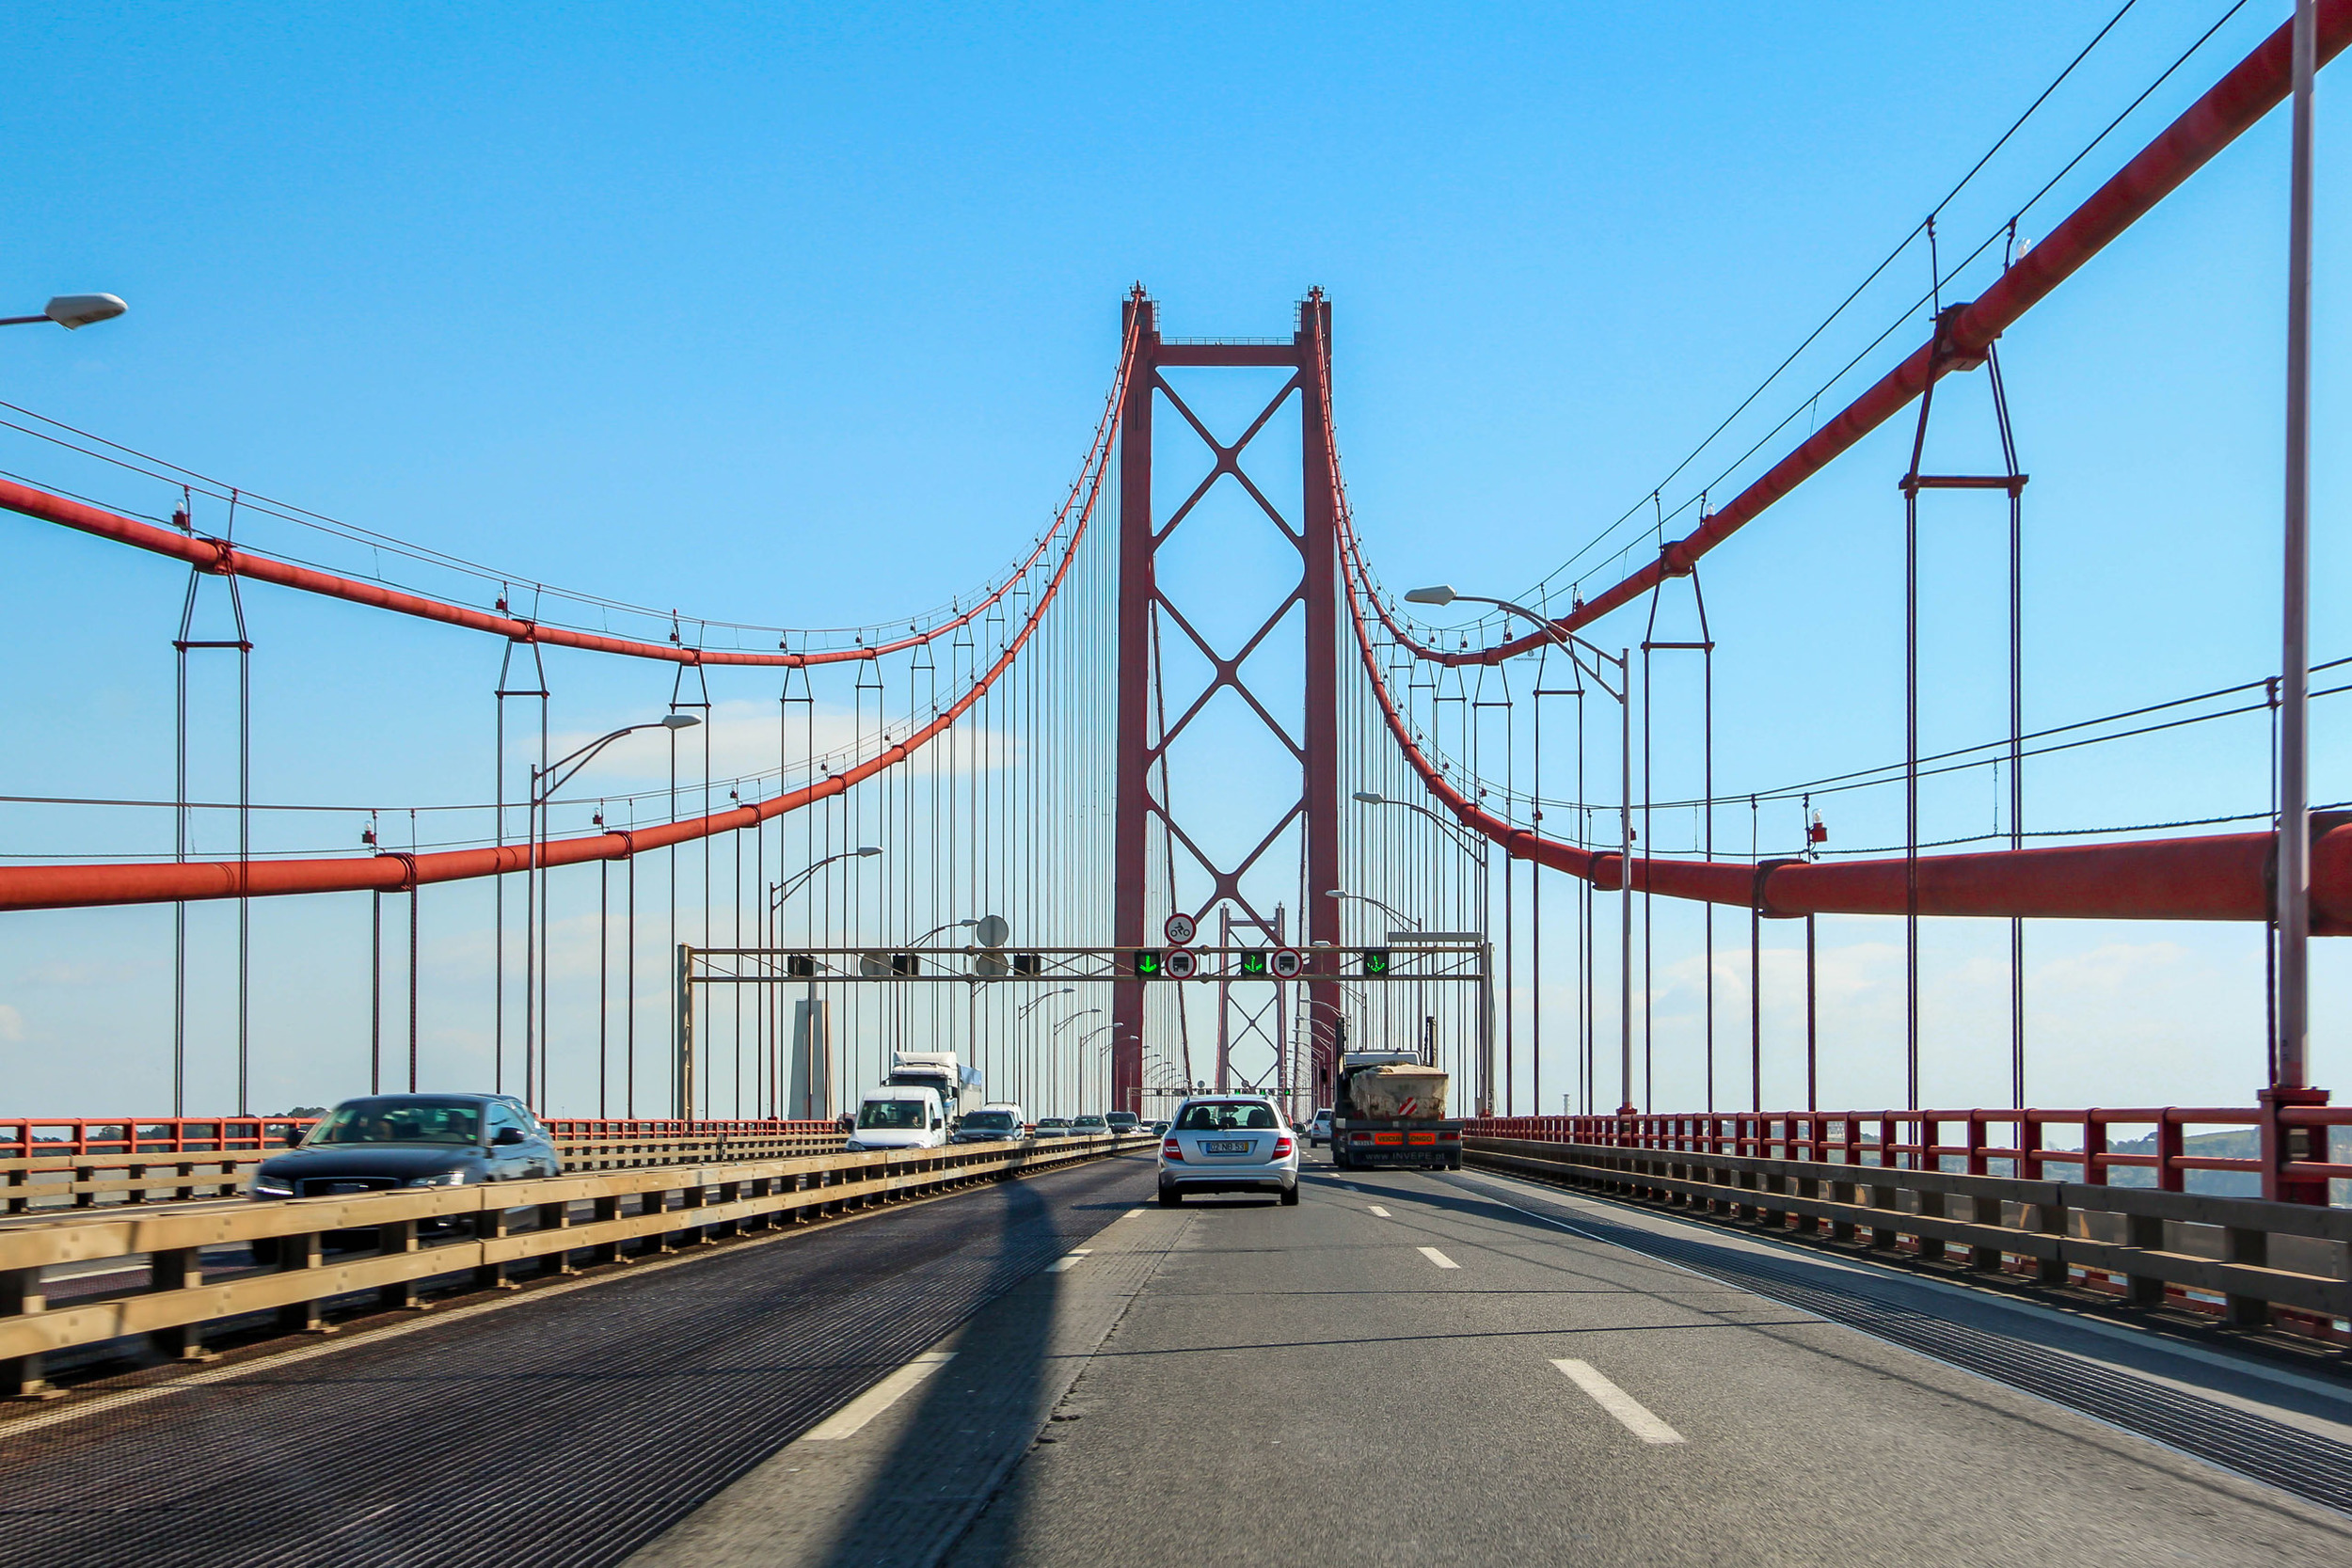 Passing the Ponte 25 de Abril bridge on our way to the Alentejo region